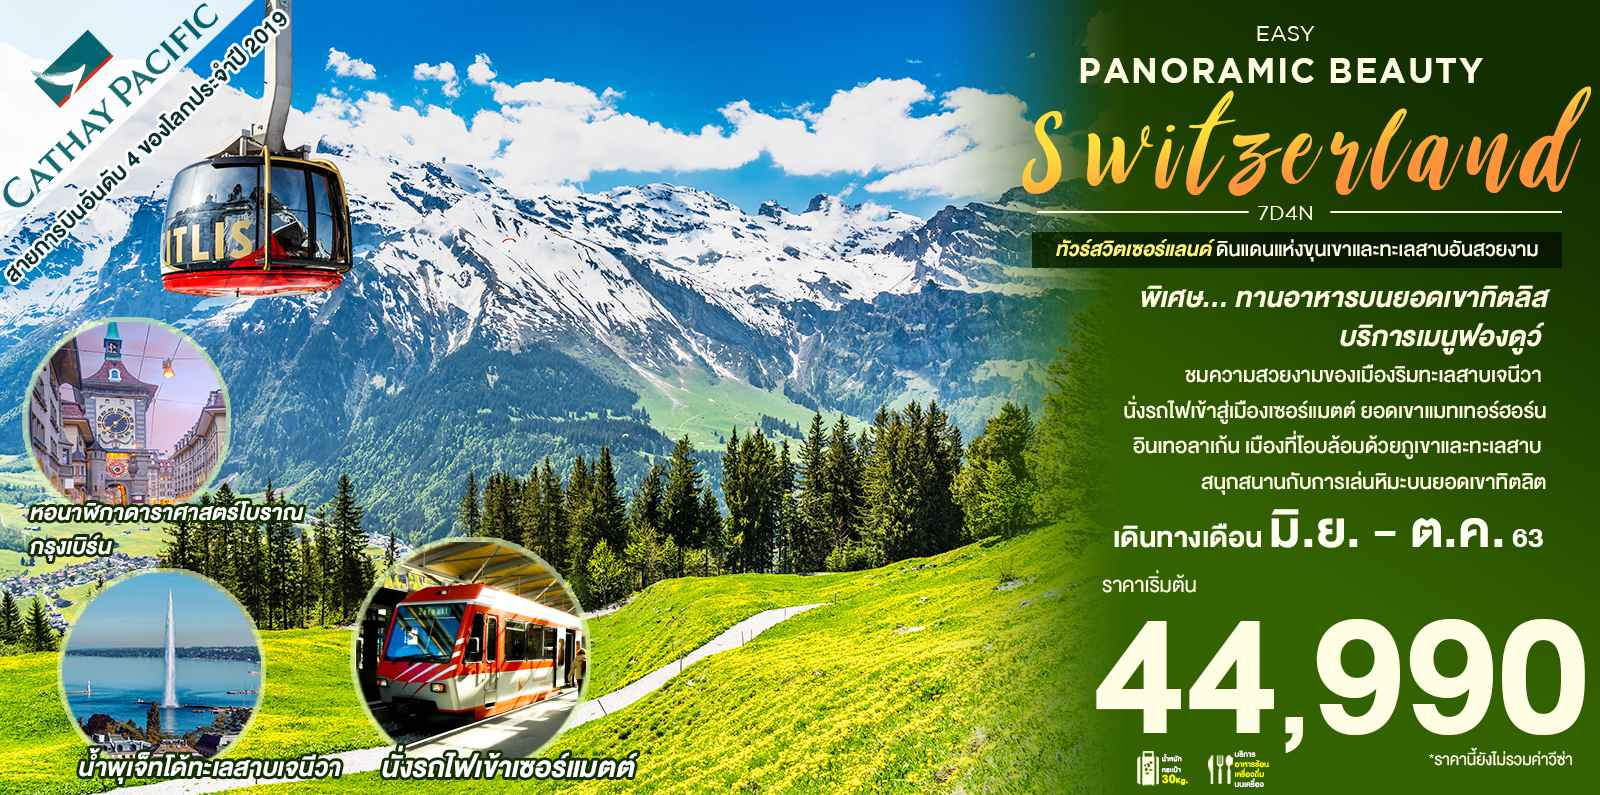 EASY PANORAMIC BEAUTY SWITZERLAND 7D4N BY CX  JUN-OCT'20